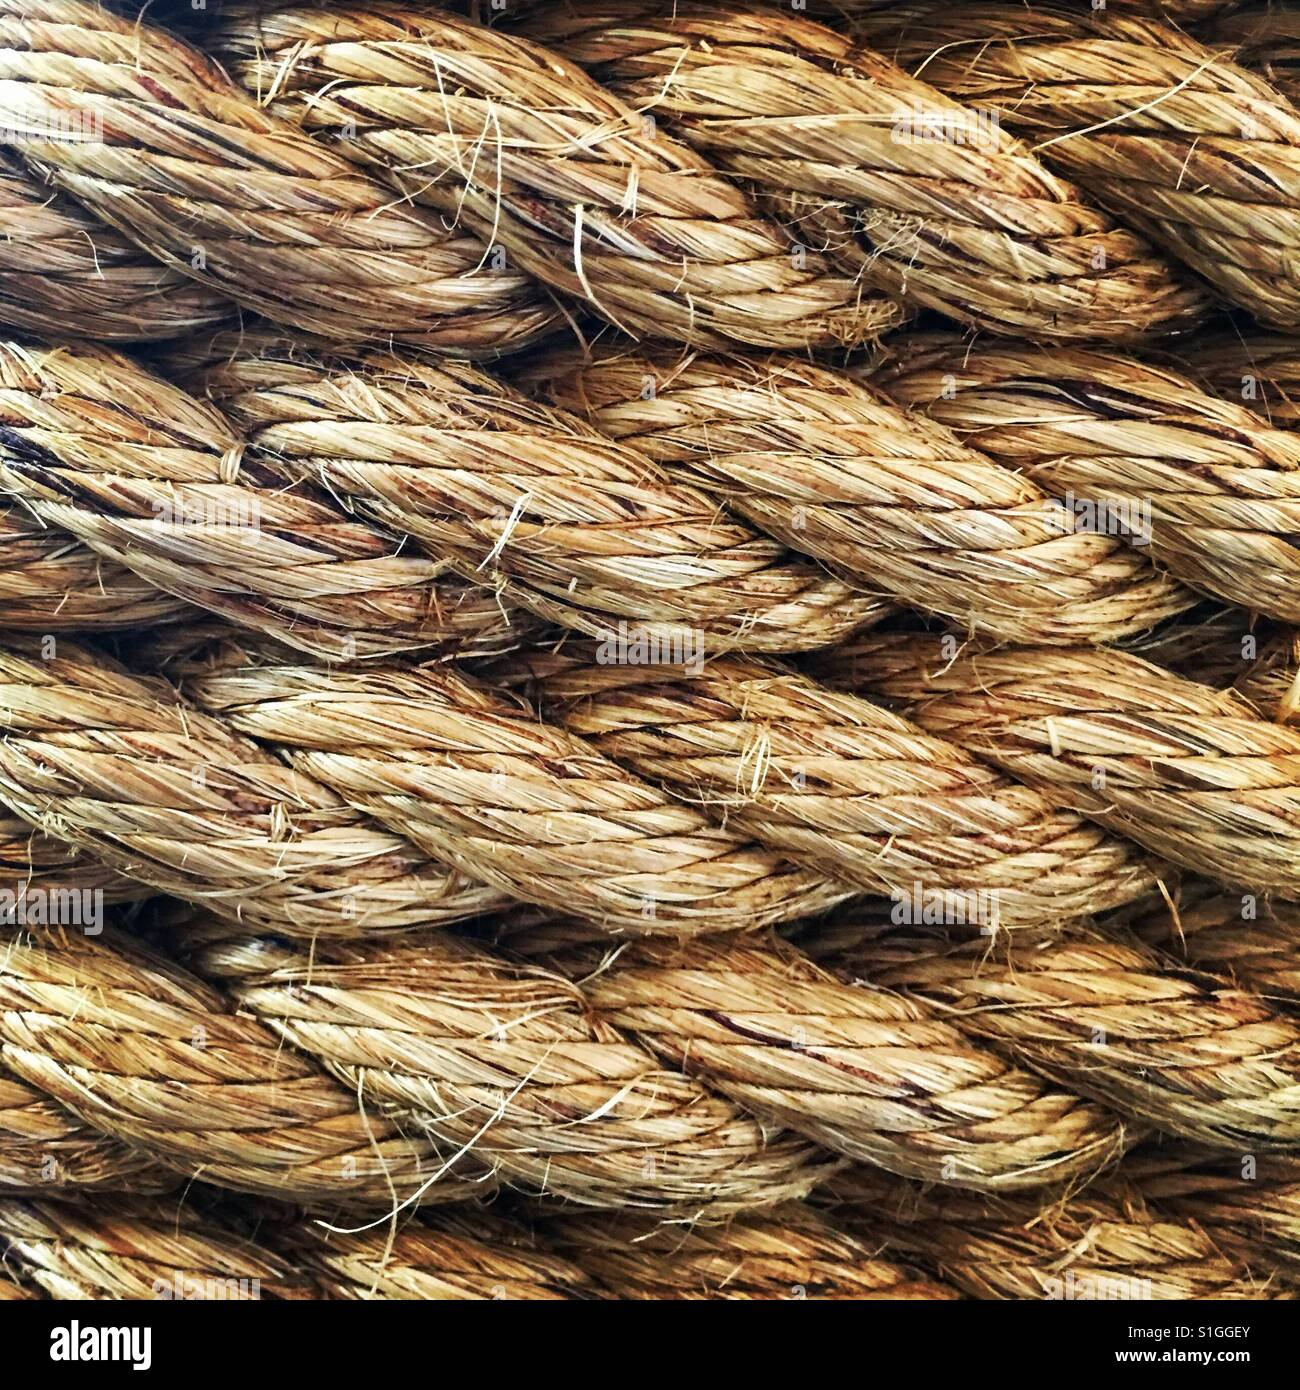 Close-up of coiled rope. - Stock Image